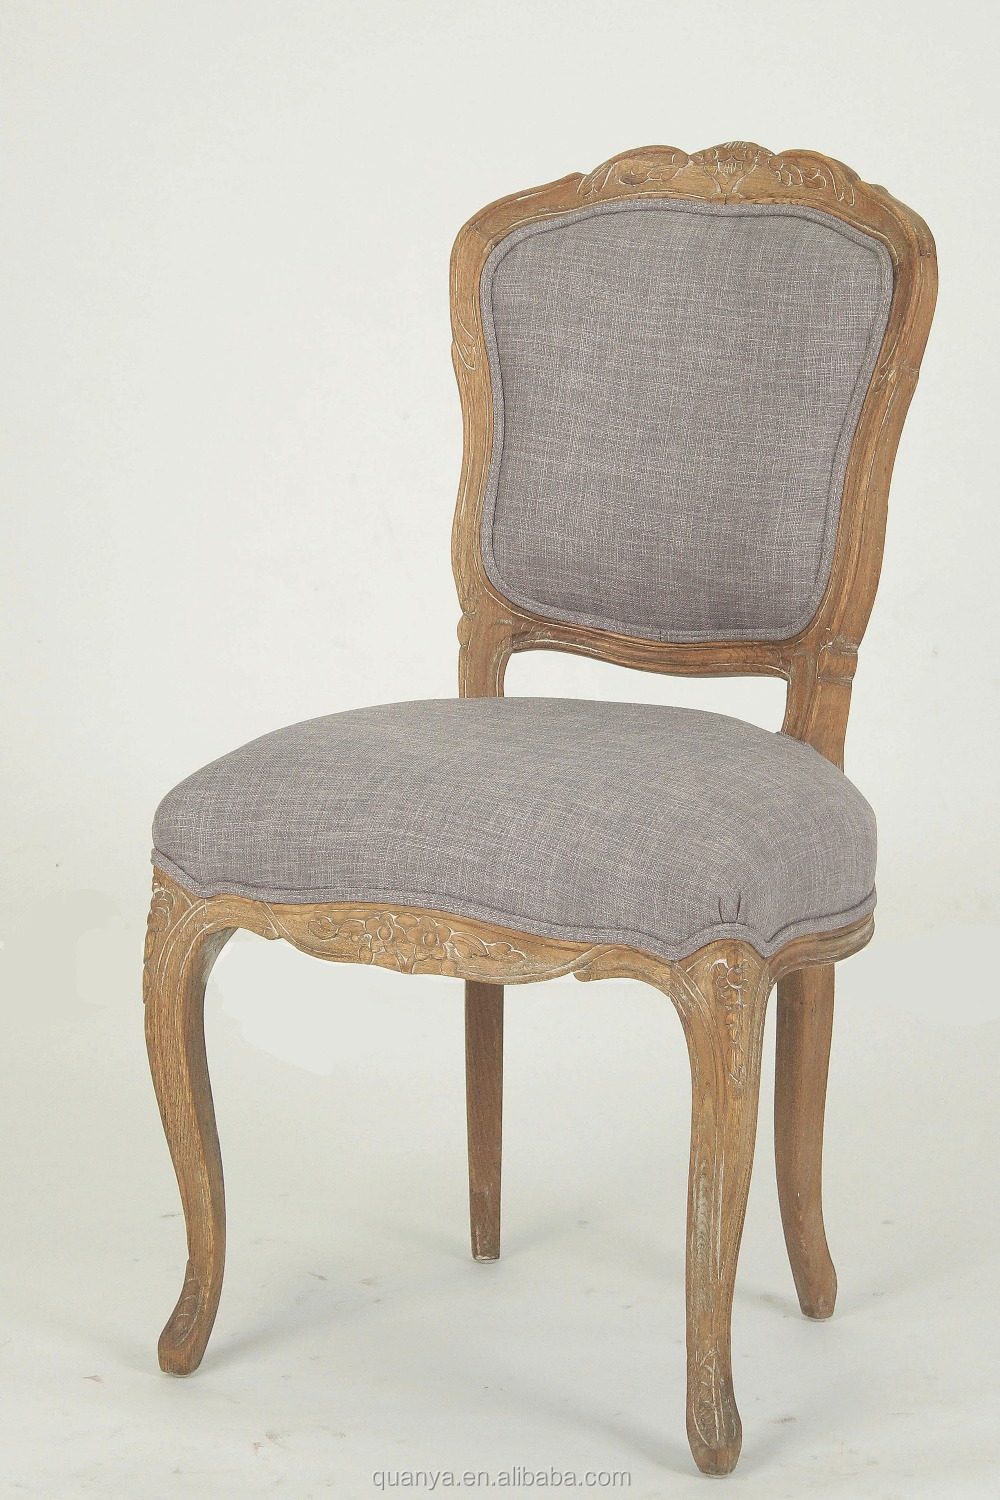 Solid Oak Side Chair With Stretch Cushion Fabric  : Solid Oak side chair with stretch cushion from alibaba.com size 1000 x 1500 jpeg 337kB